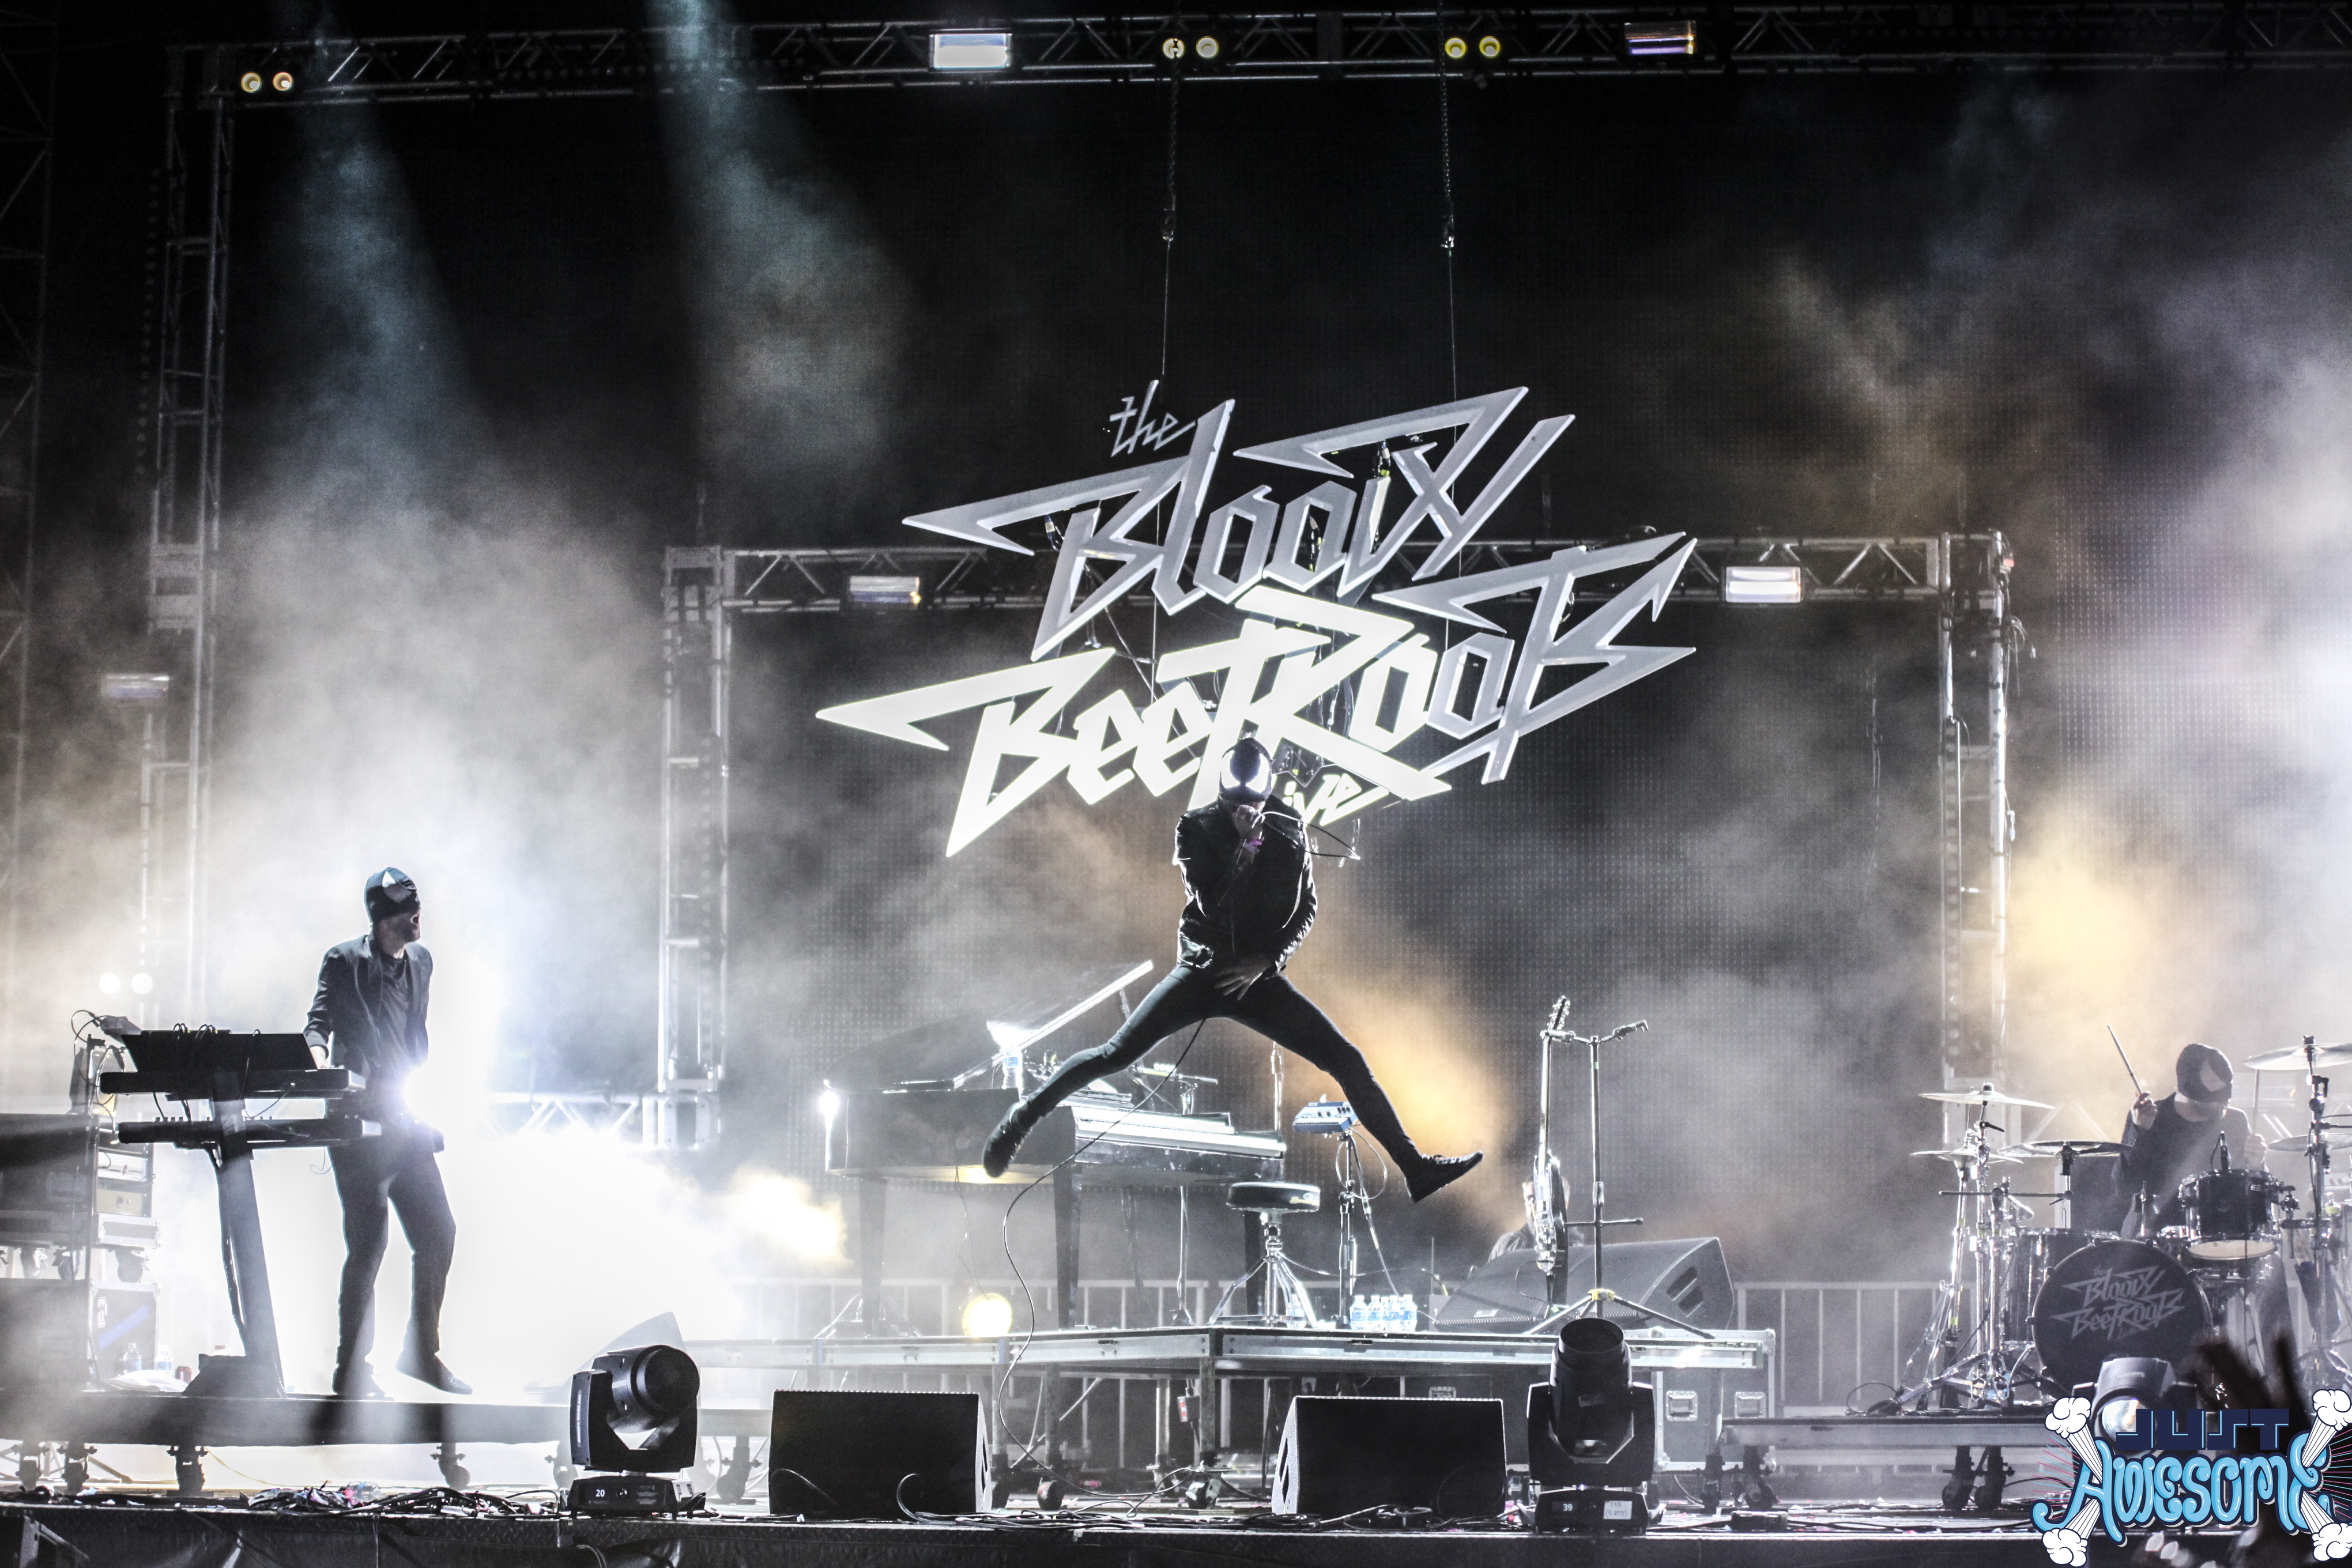 HQ The Bloody Beetroots Wallpapers | File 4661.83Kb